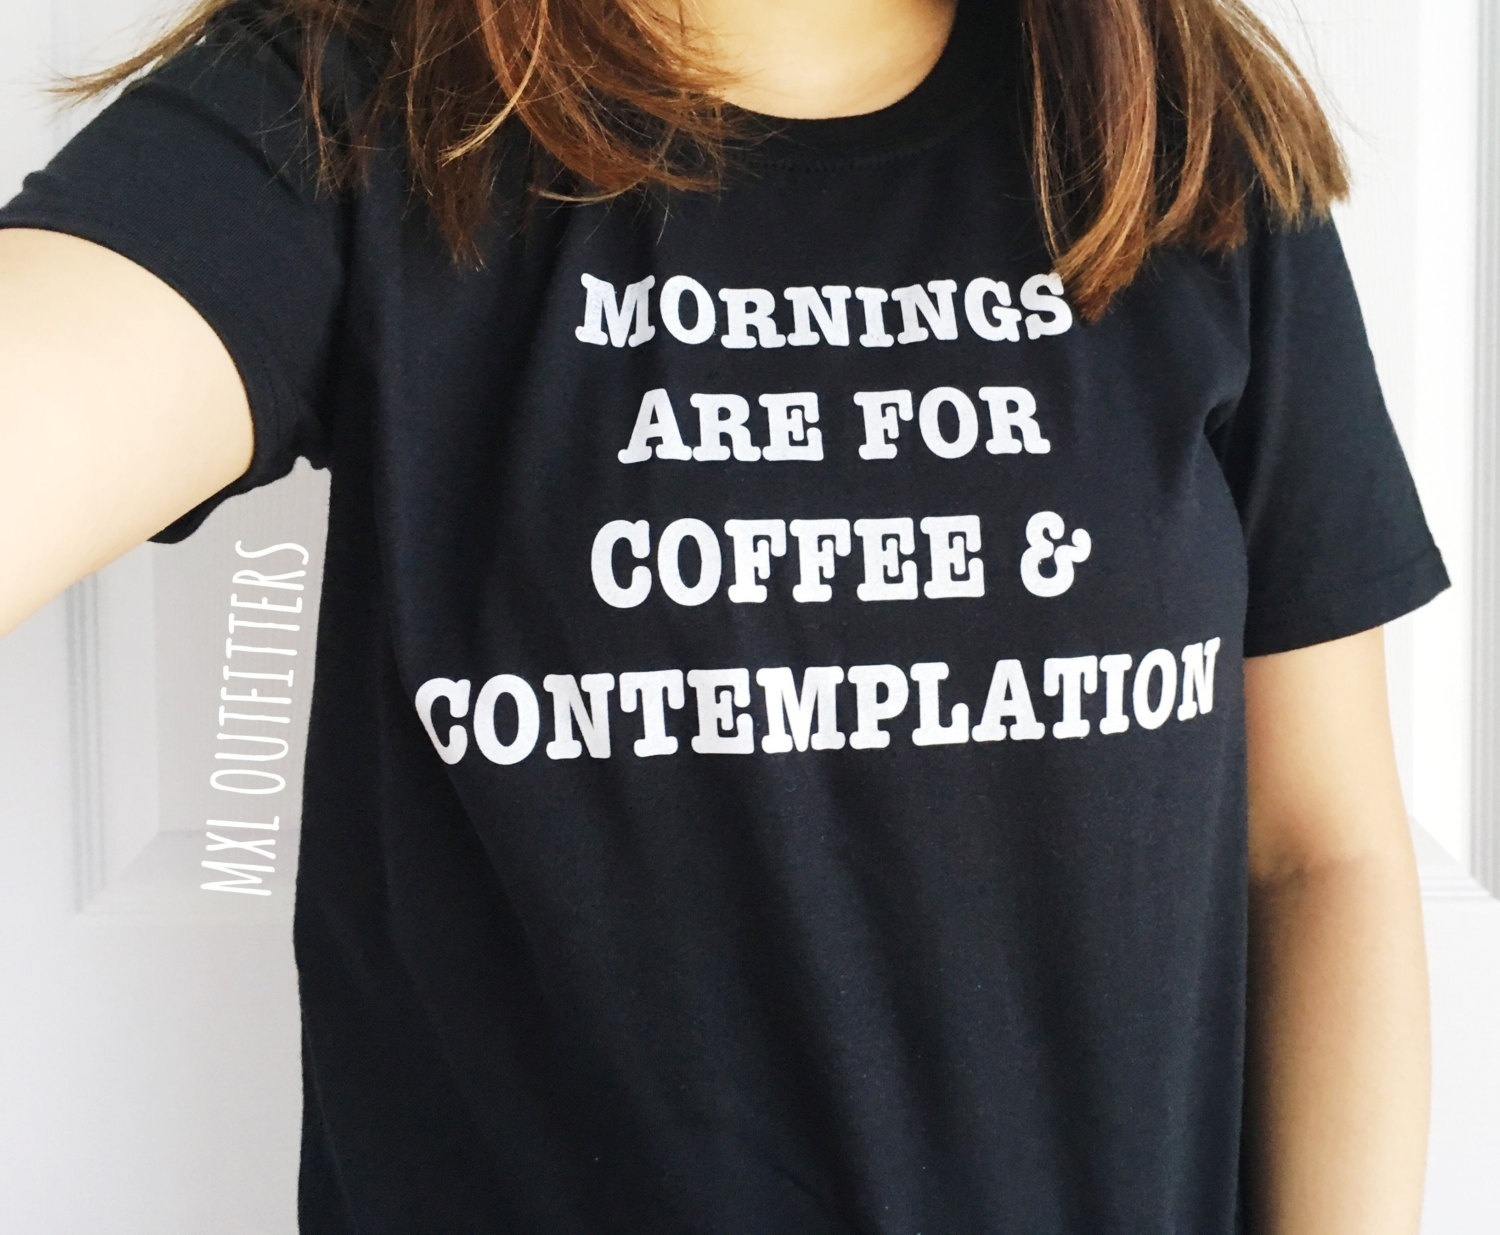 Us 110 Pudo Xhm Mornings Are For Coffee And Contemplation T Shirt Women Harajuku Tumblr Saying Coffee T Shirt Womens Clothing Tee Shirt In T Shirts